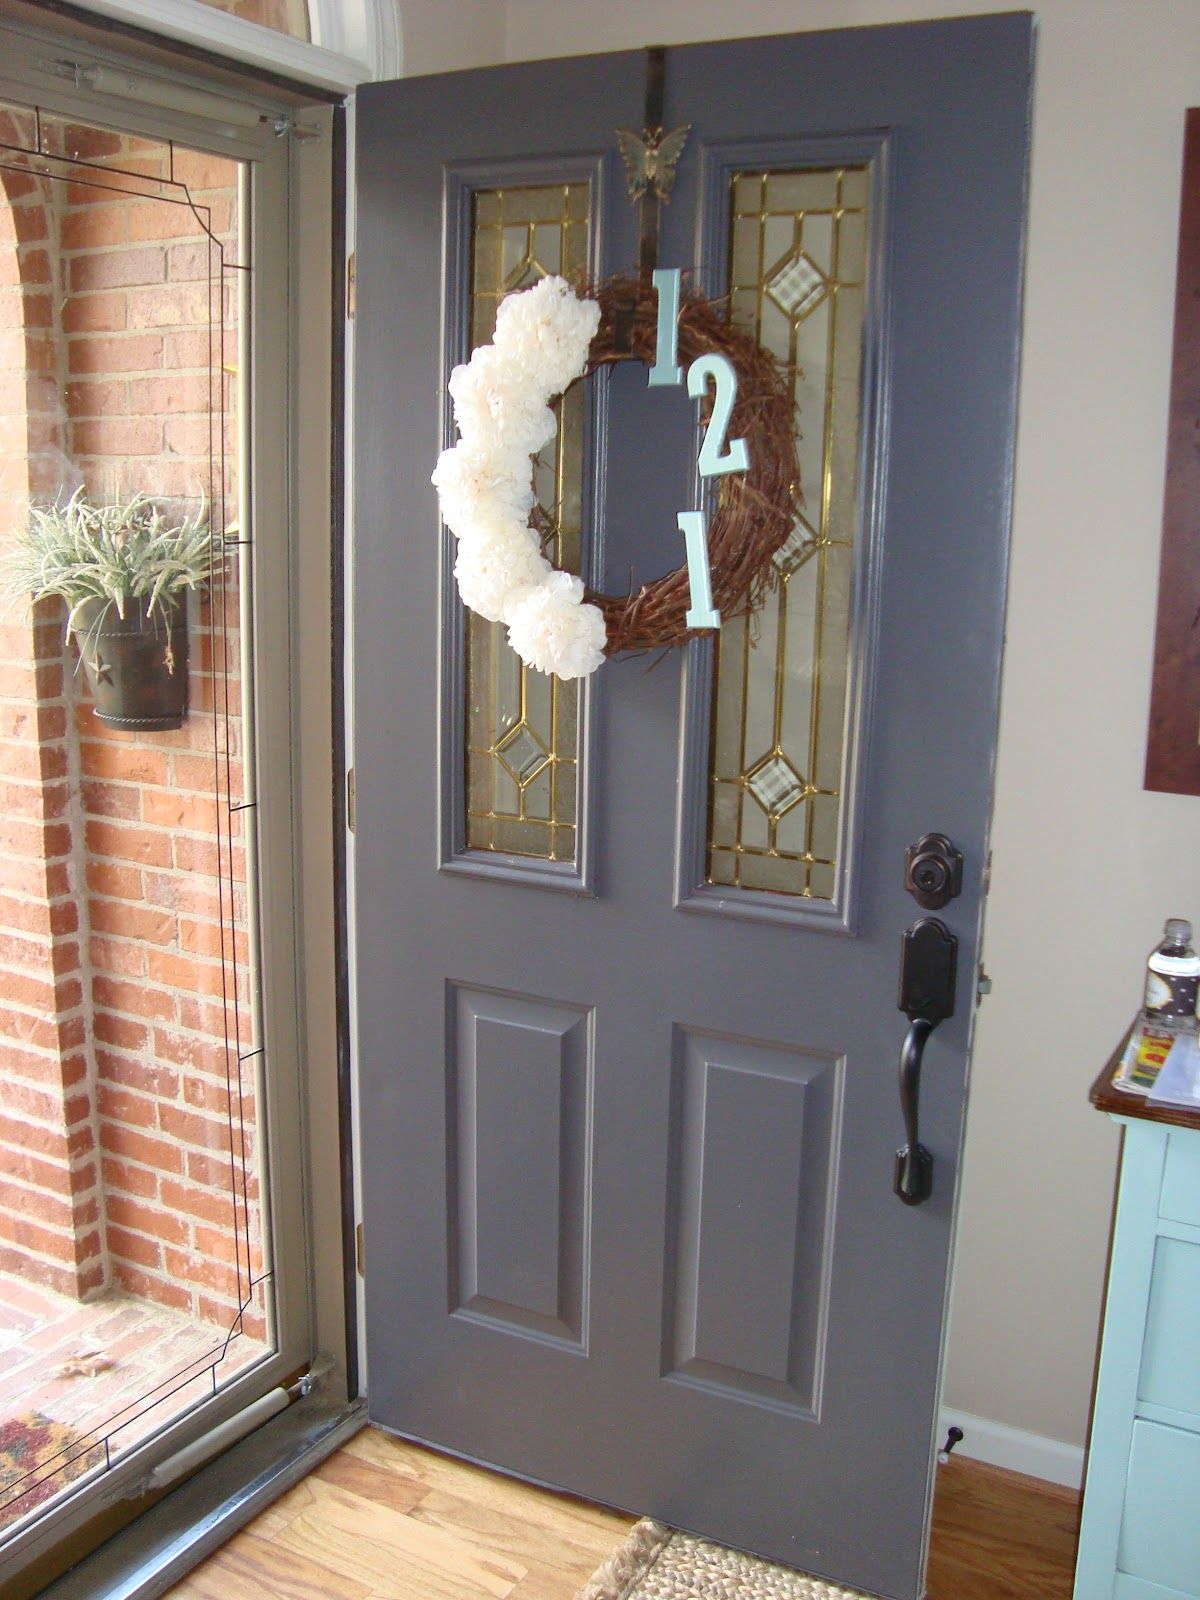 Home sweet home front door and rachel 39 s painting tips for Front door rachel zeffira lyrics